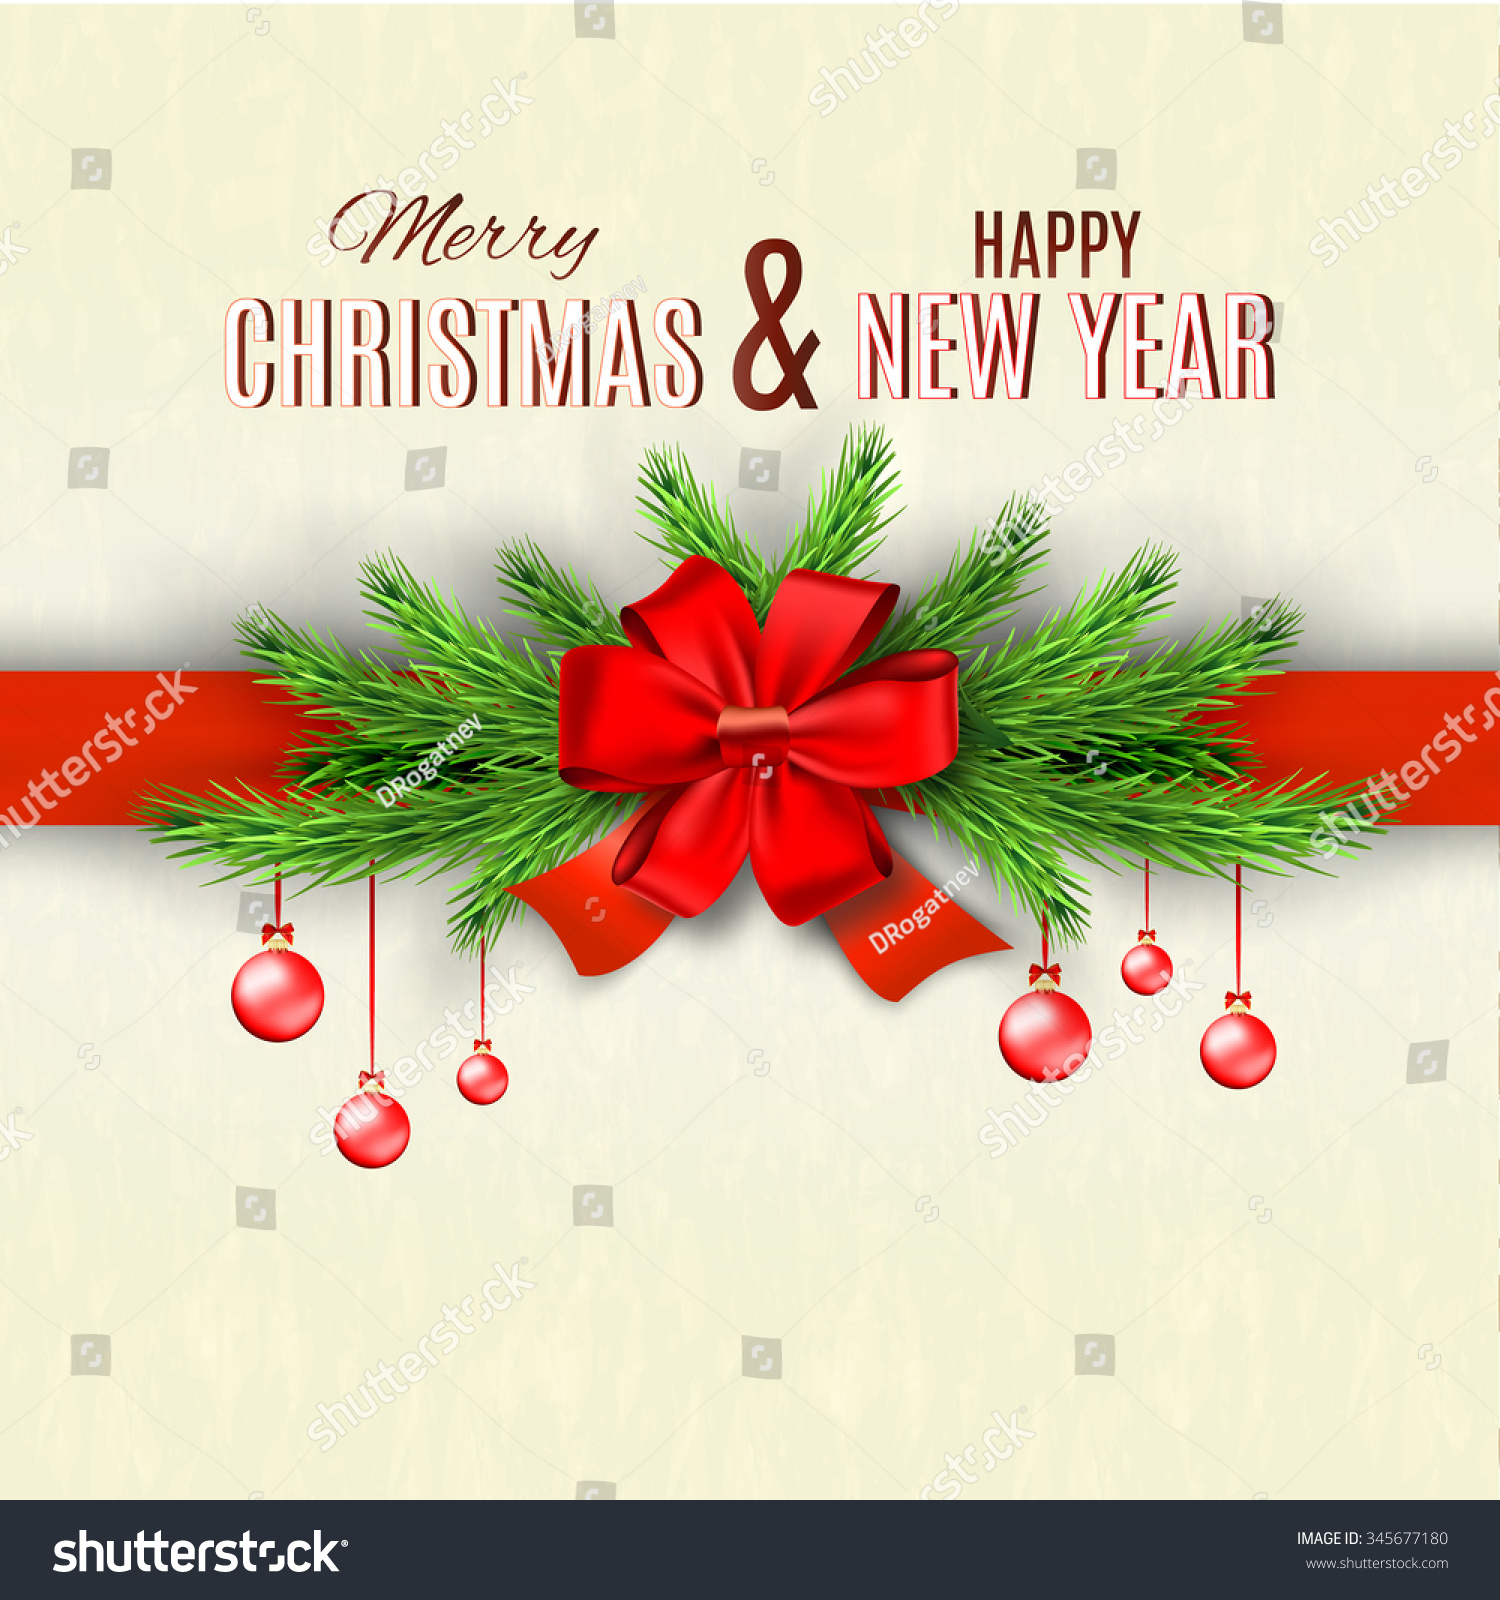 Happy new year merry christmas greeting stock illustration 345677180 happy new year and merry christmas greeting card design illustration red silk bow with kristyandbryce Image collections